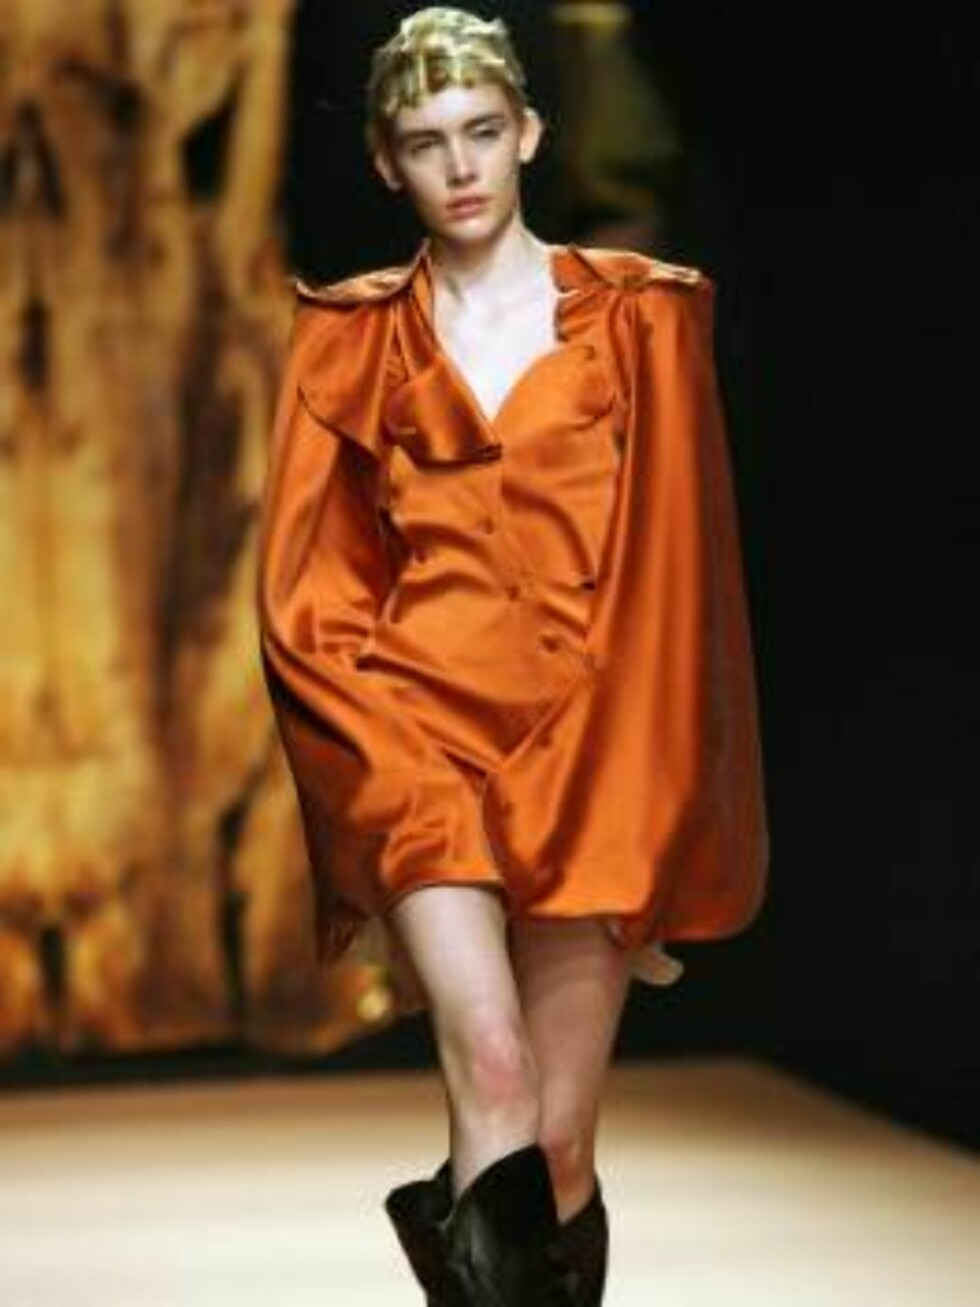 A model displays a creation by British fashion designer Vivienne Westwood during her Fall-Winter 2007-2008 Ready-To-Wear collection show held at the Carrousel du Louvre in Paris, France on February 27, 2007. Photo by Guignebourg-Nebinger-Taamallah/ABACAPR Foto: Stella Pictures